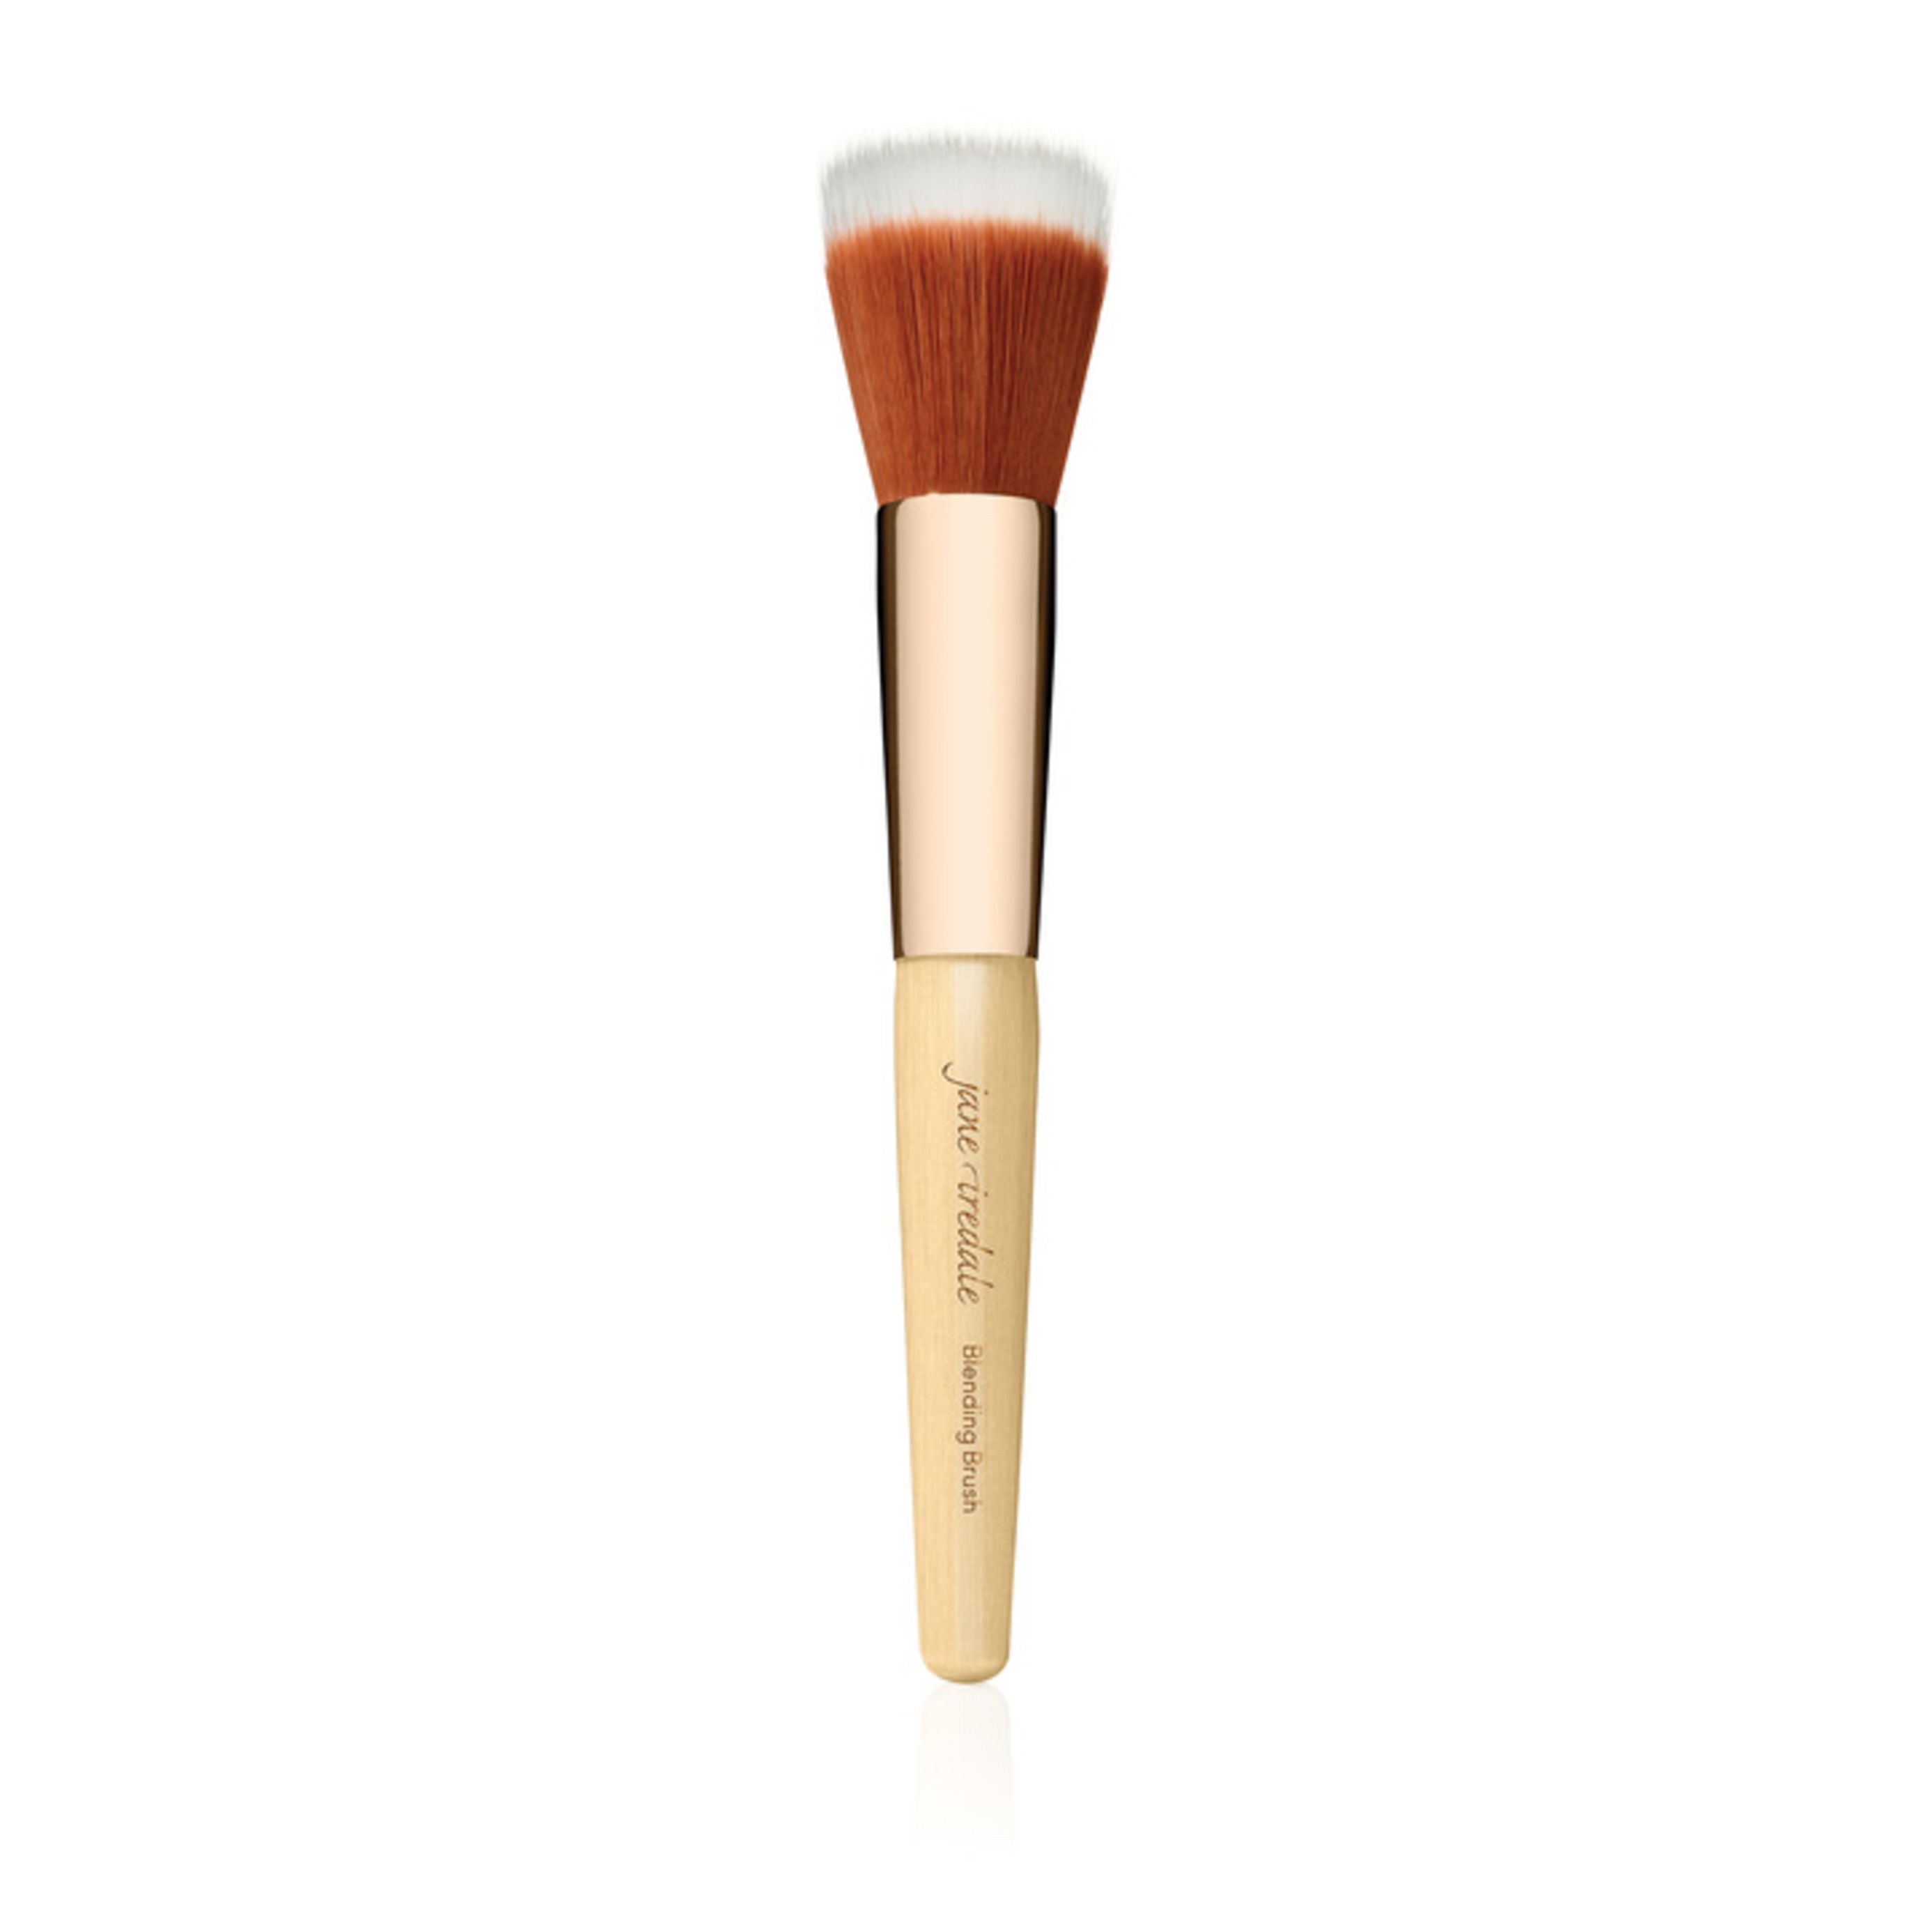 Angled Brow Brush & Spoolie by Benefit #13